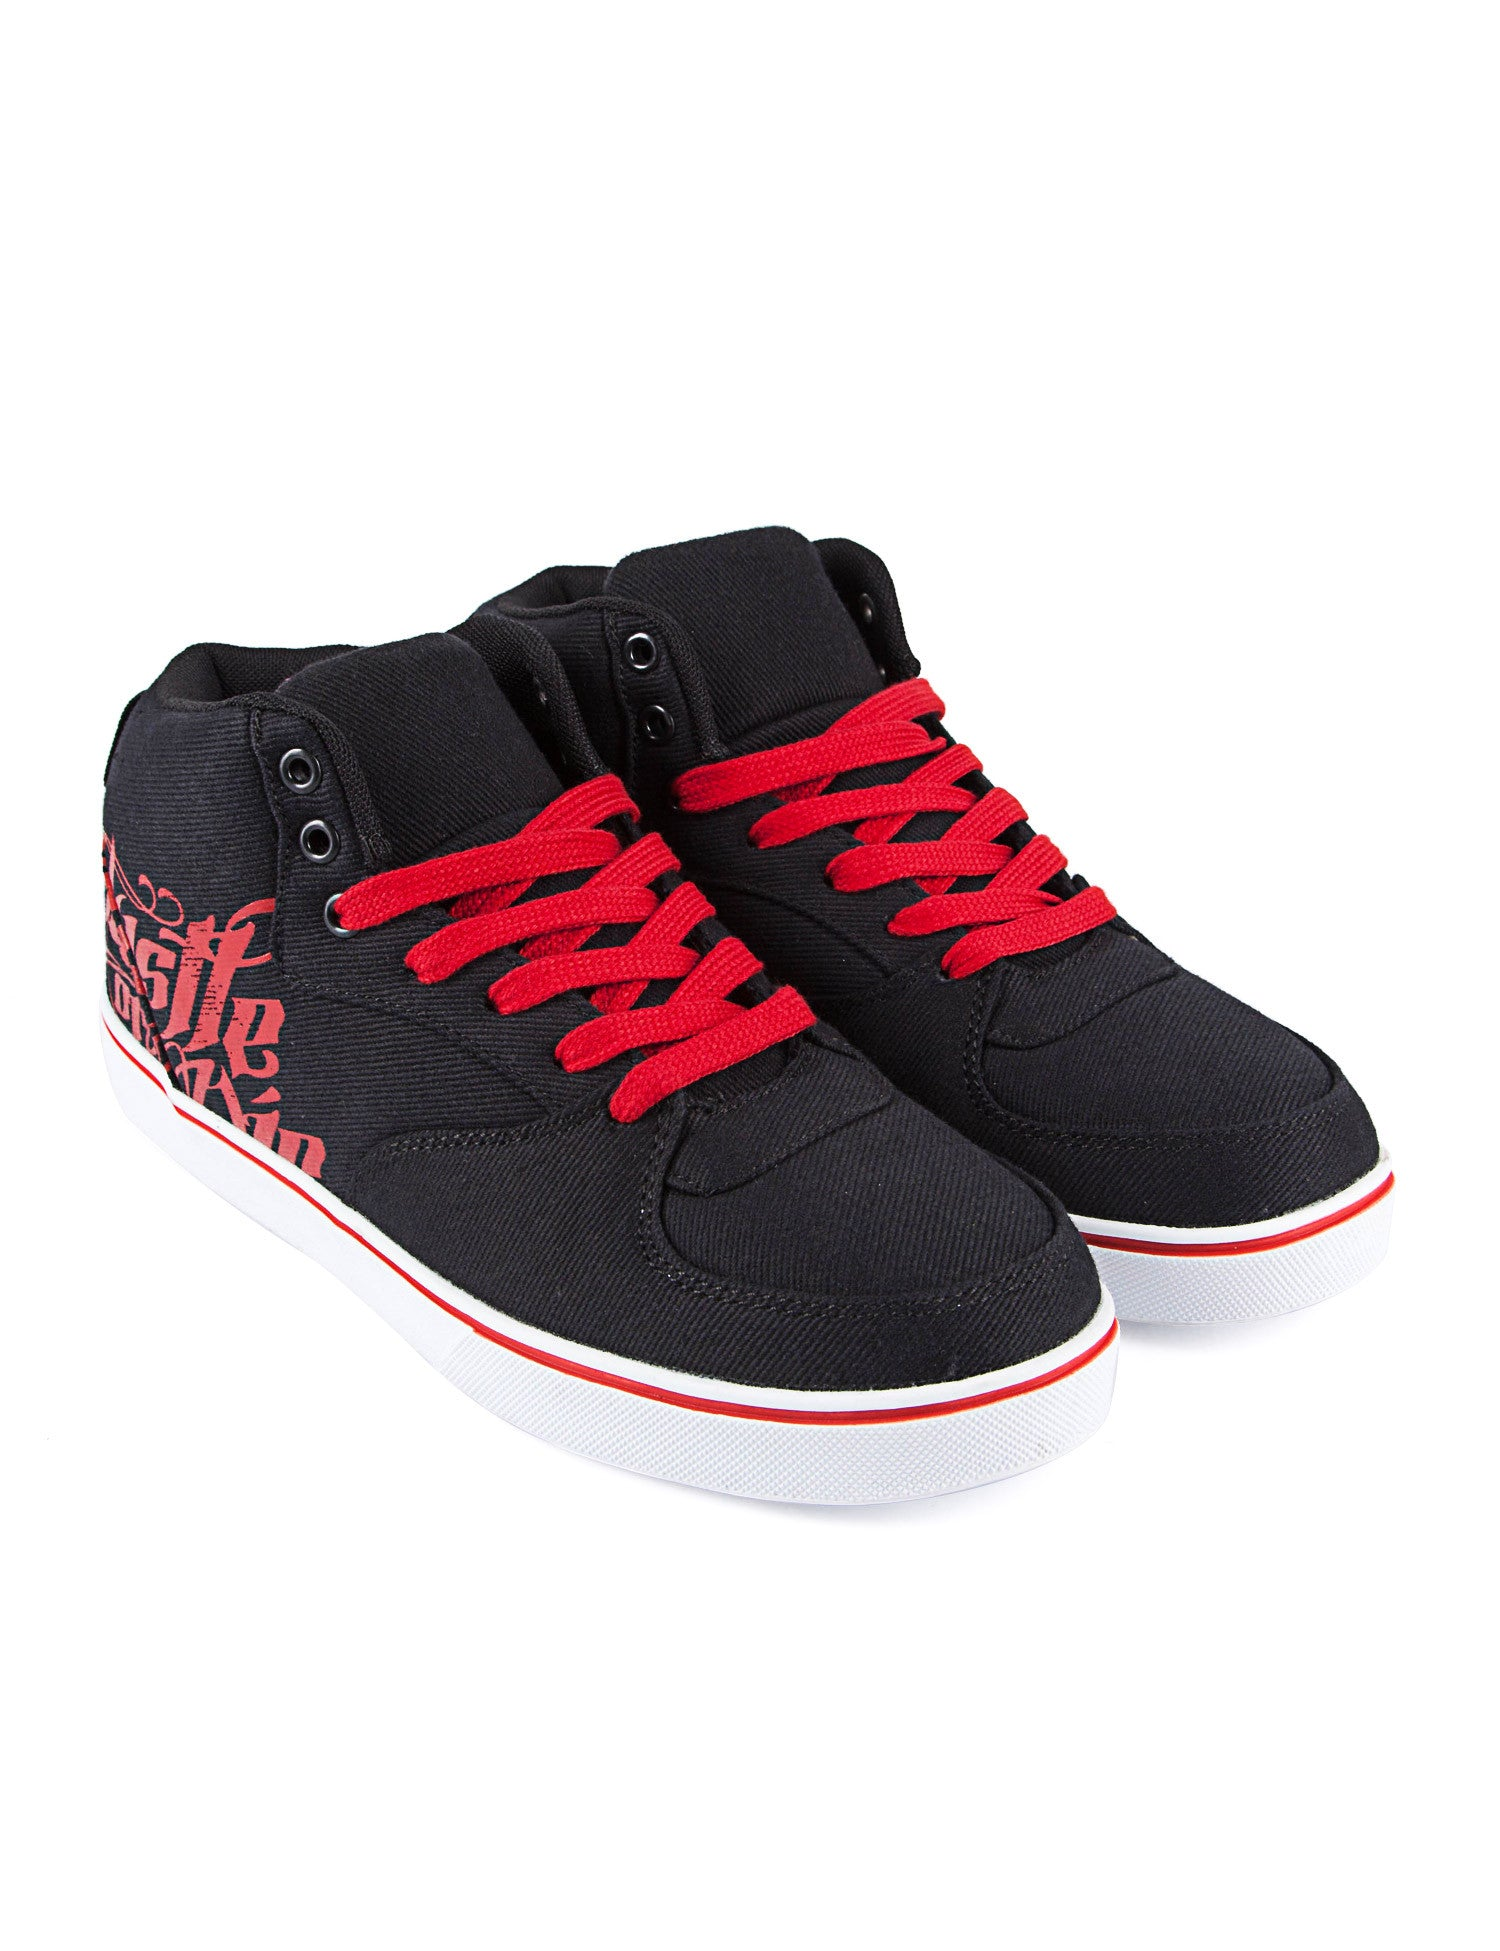 Townz Hustle or Die Shoes Black